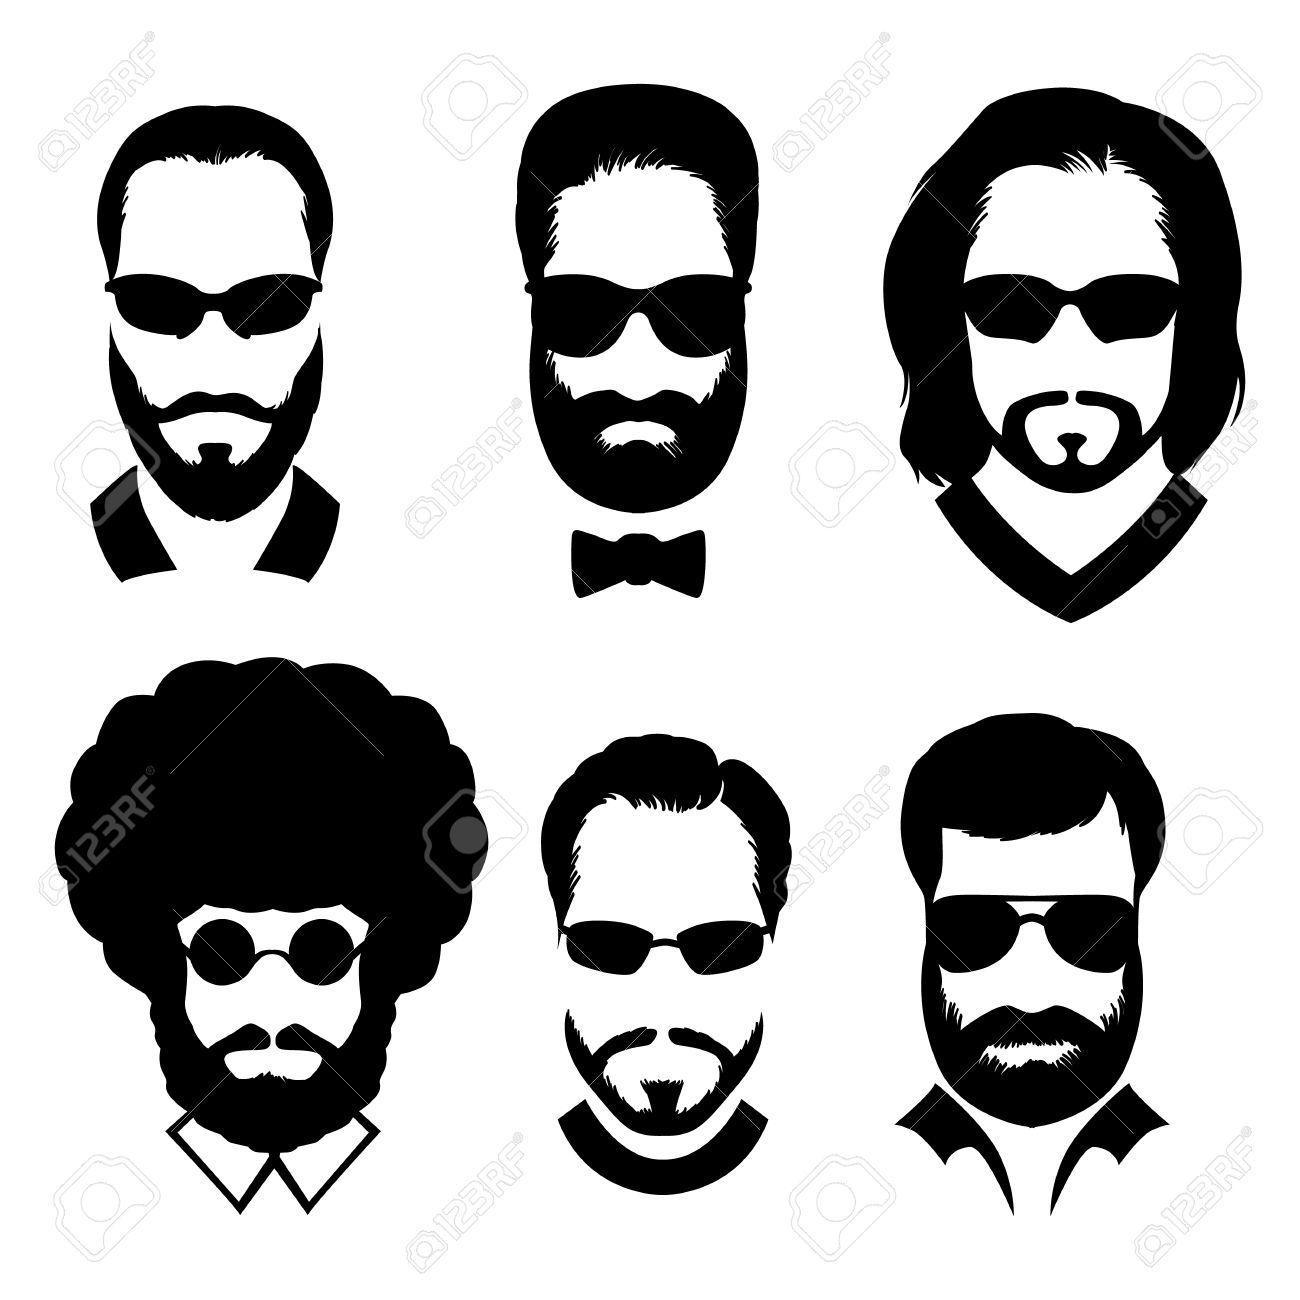 Image result for man with beard clipart.